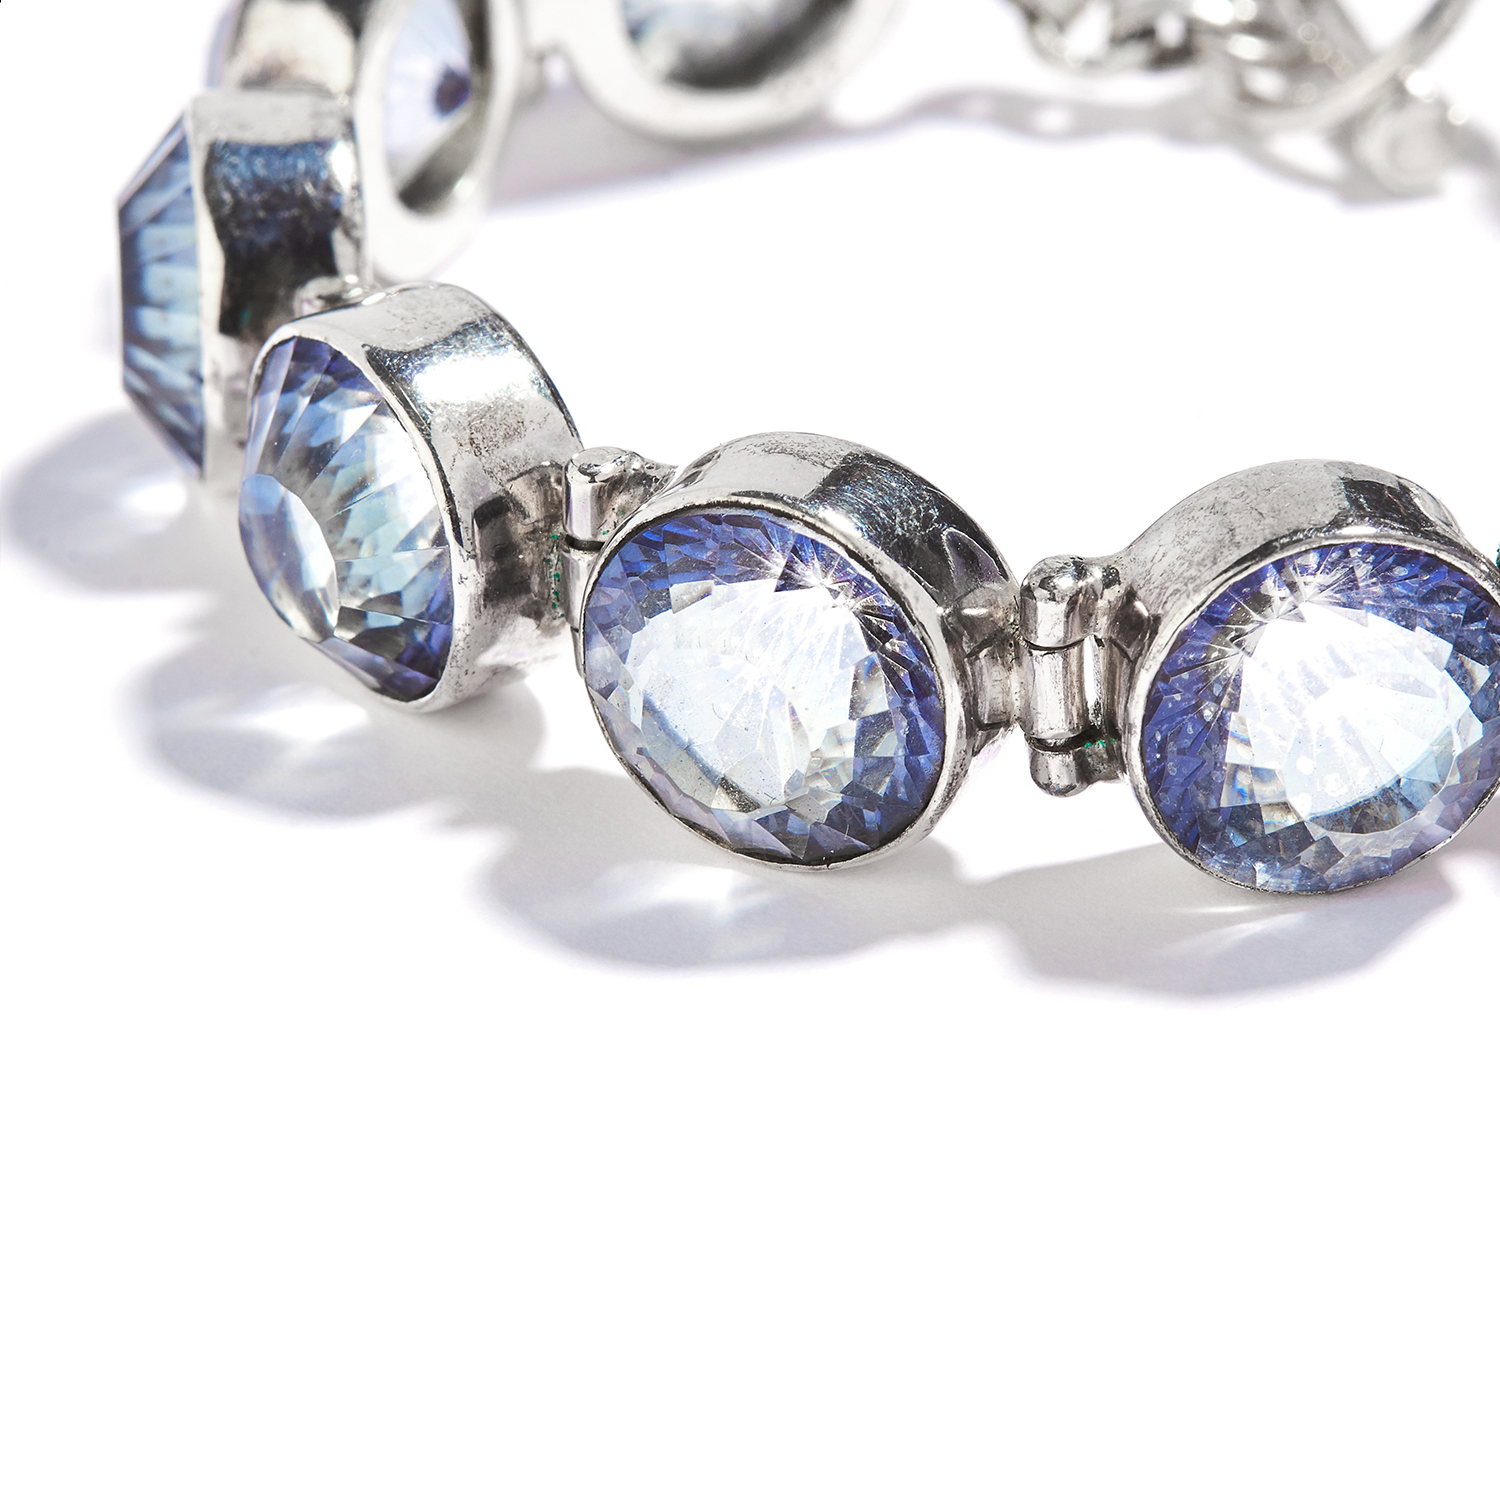 TOPAZ BRACELET AND EARRING SUITE in sterling silver, set with grey/blue faceted topaz, stamped - Image 2 of 3